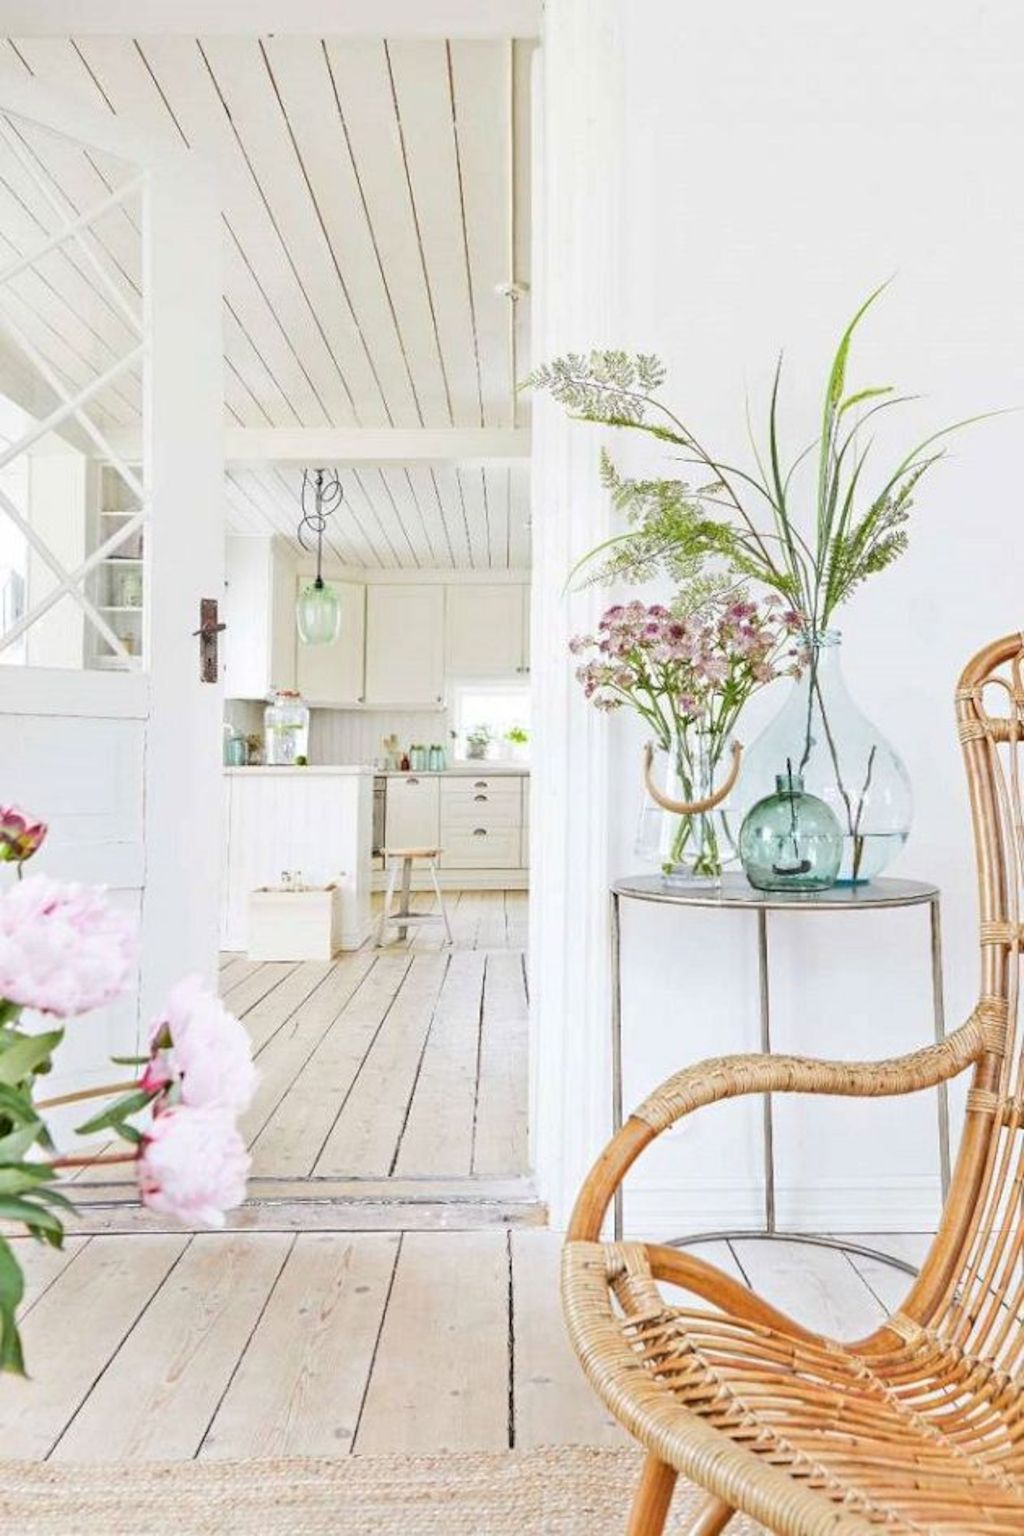 Coastal chic decoration with nautical accessories showing a fresh look in cool beach house styles Image 11